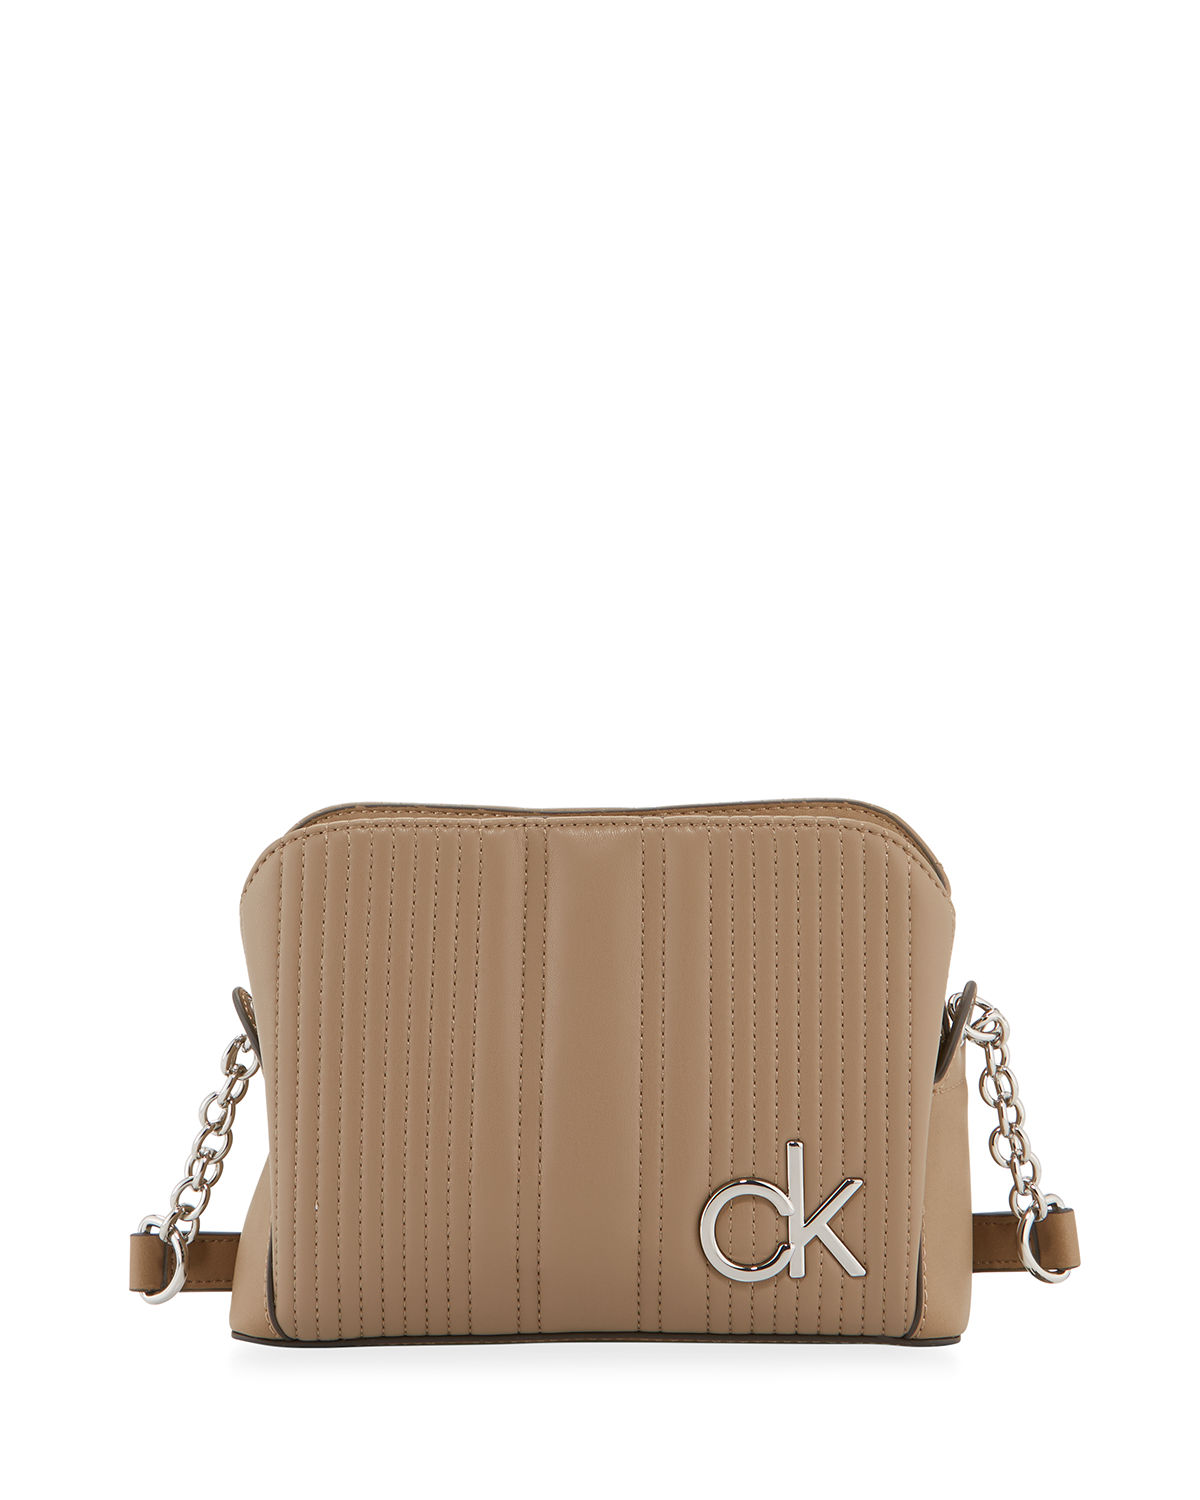 Calvin Klein Quilted Leather Crossbody Bag In Taupe